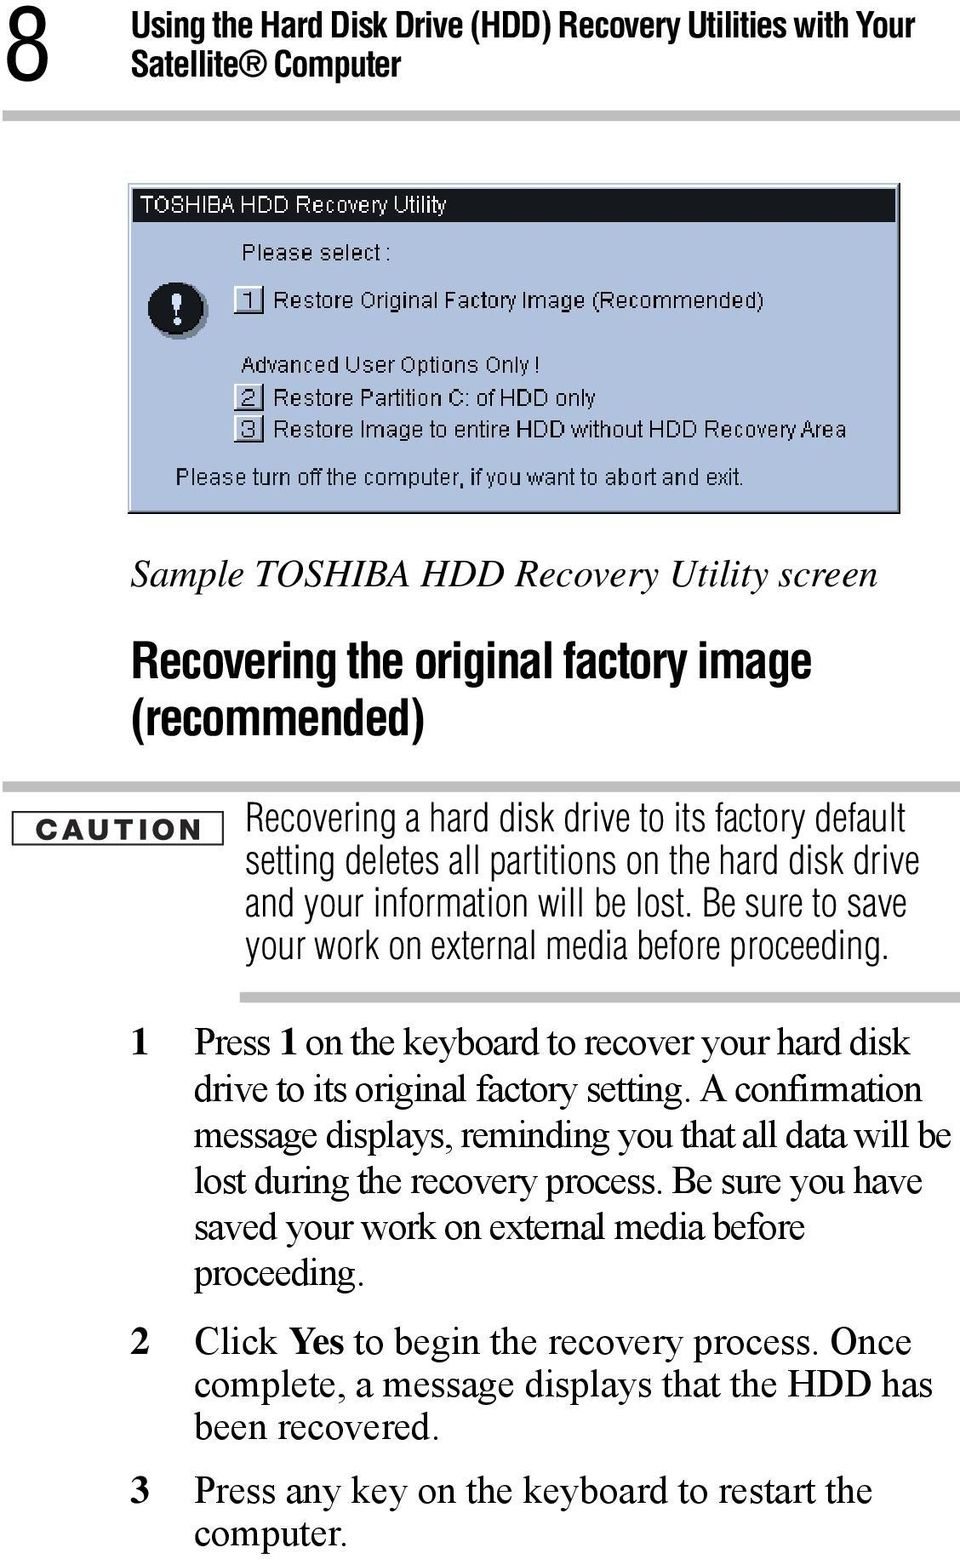 1 Press 1 on the keyboard to recover your hard disk drive to its original factory setting. A confirmation message displays, reminding you that all data will be lost during the recovery process.